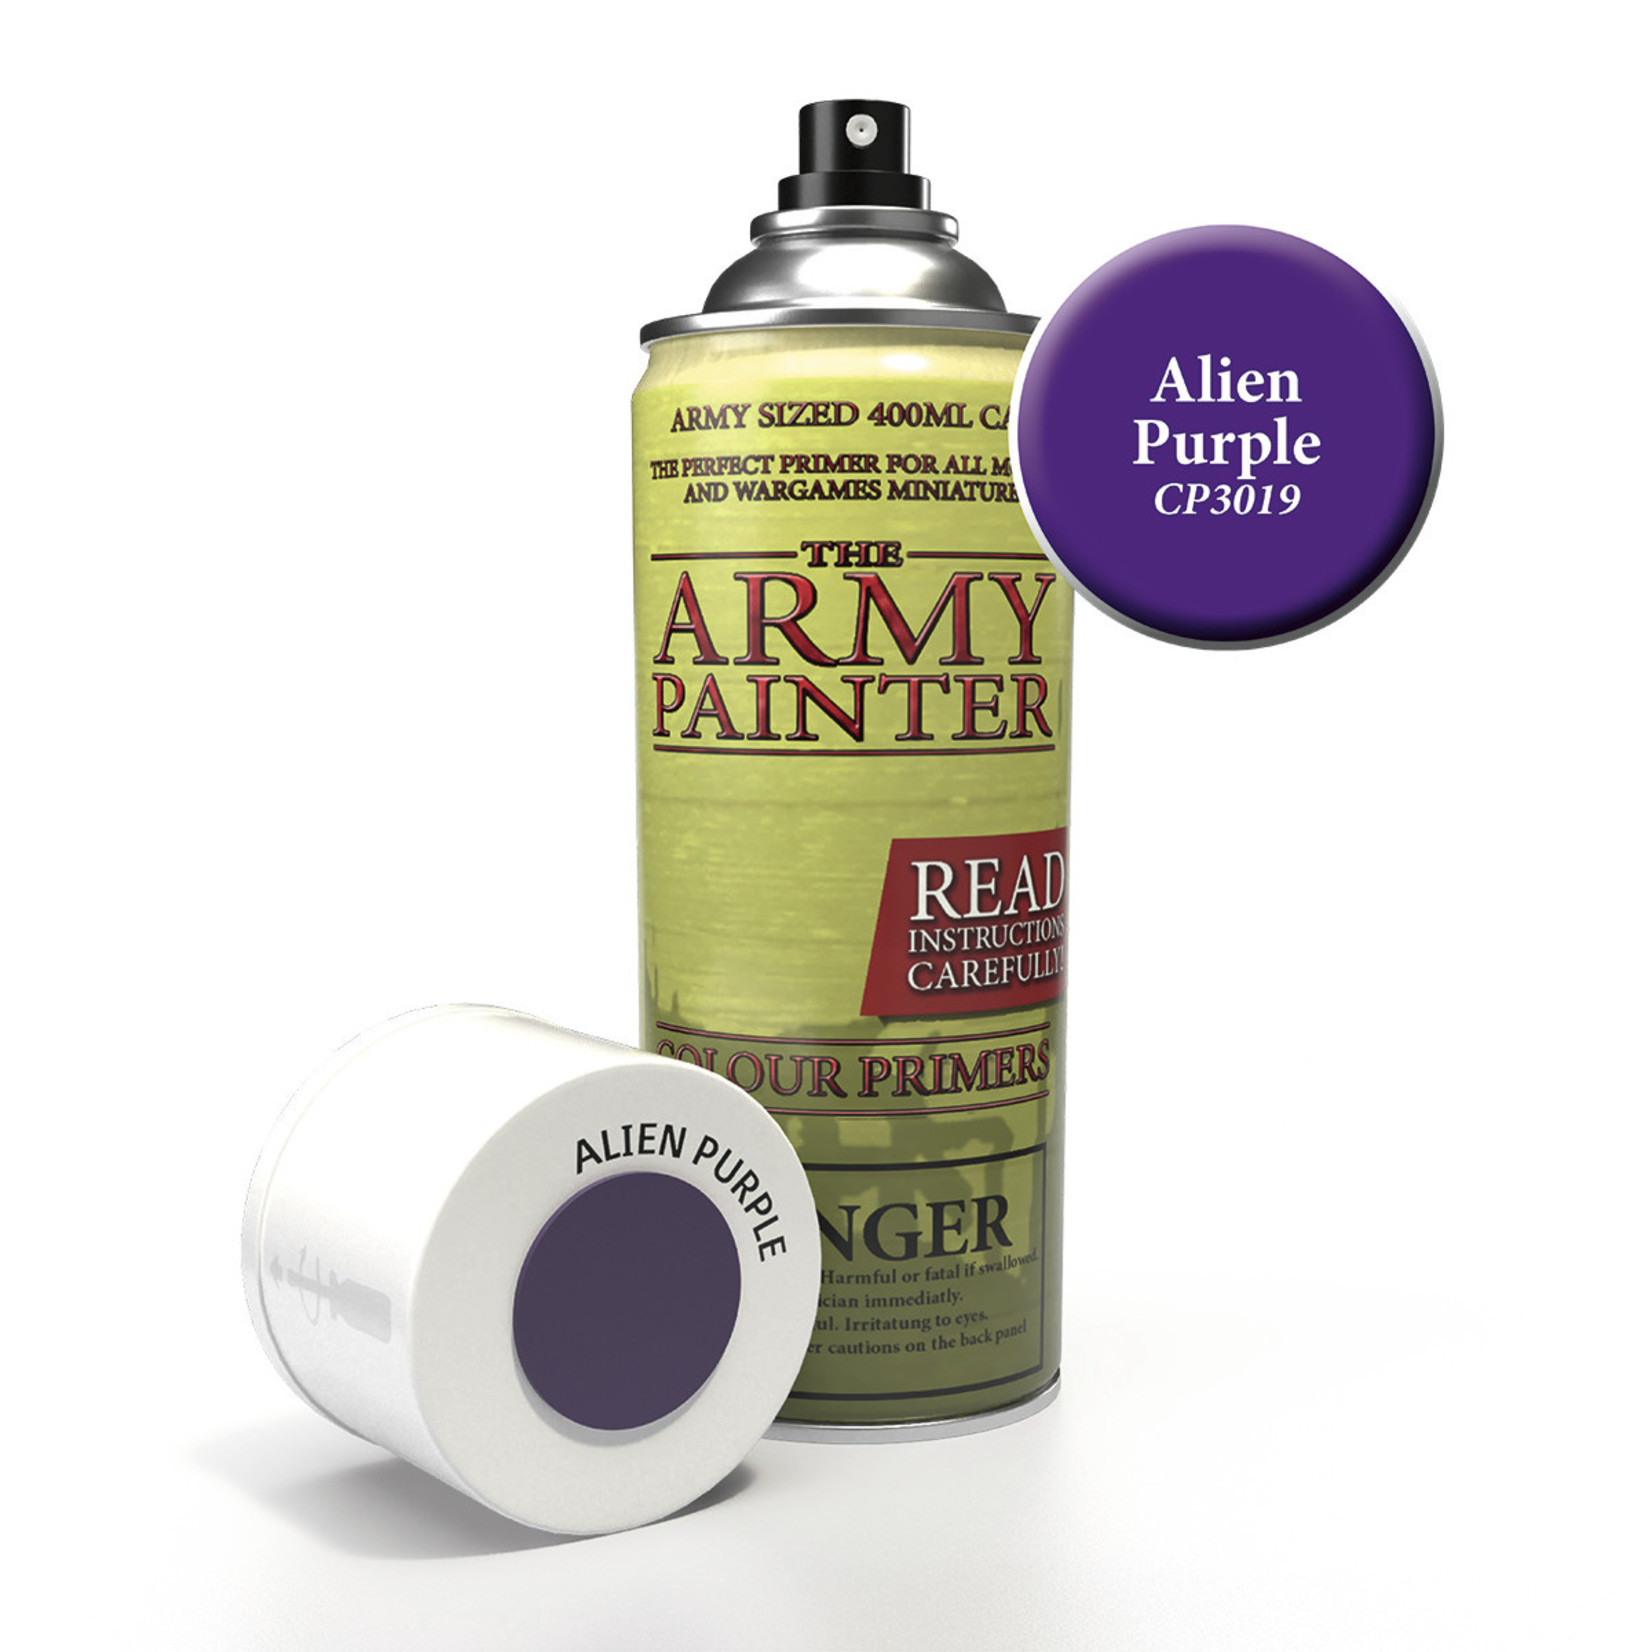 The Army Painter The Army Painter: Primer:  Alien Purple